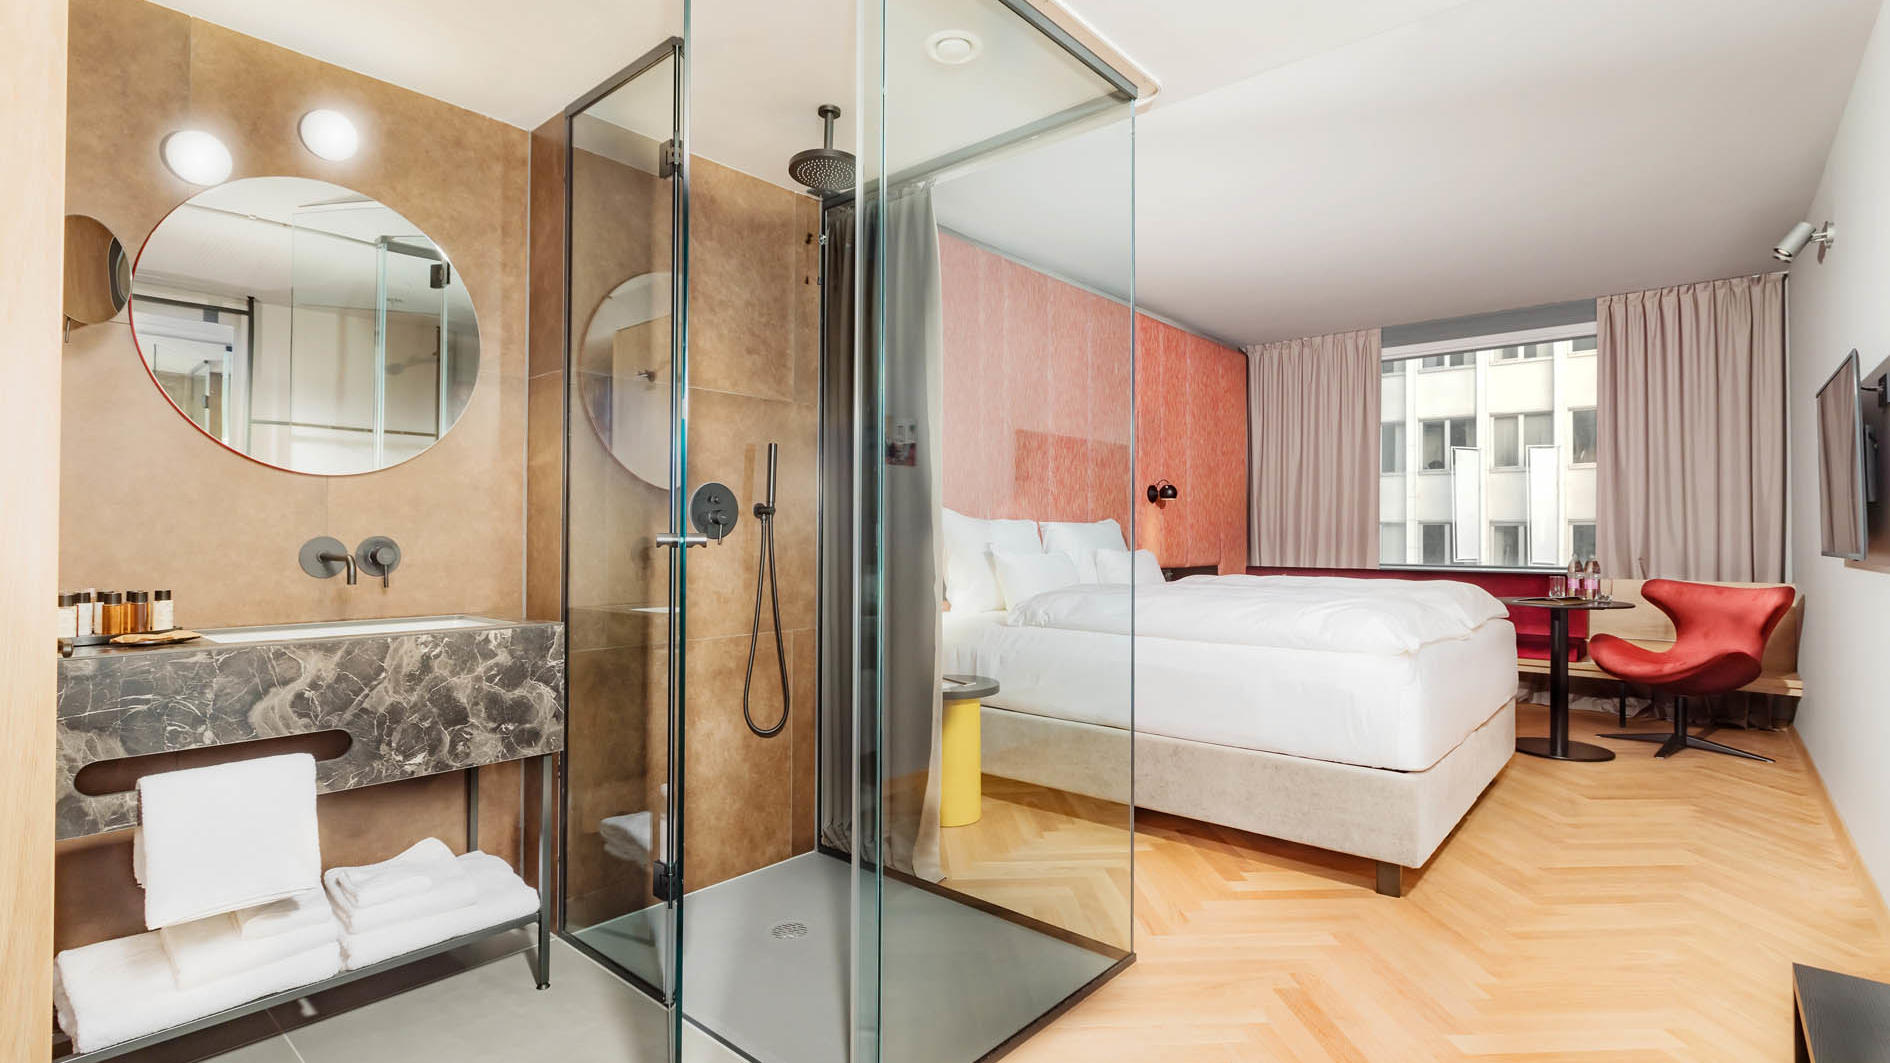 Premier double rooms at Hotel Lev in Ljubljana